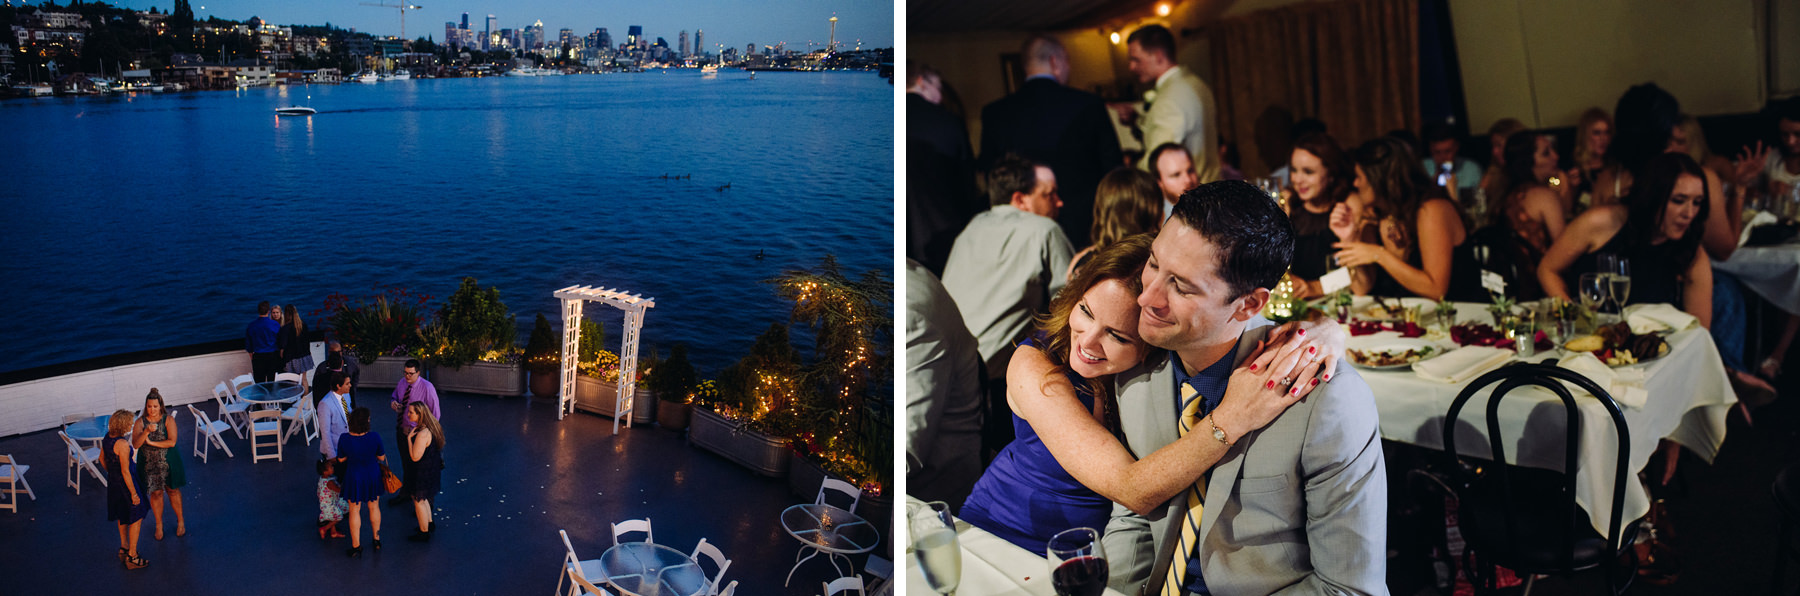 mv skansonia wedding